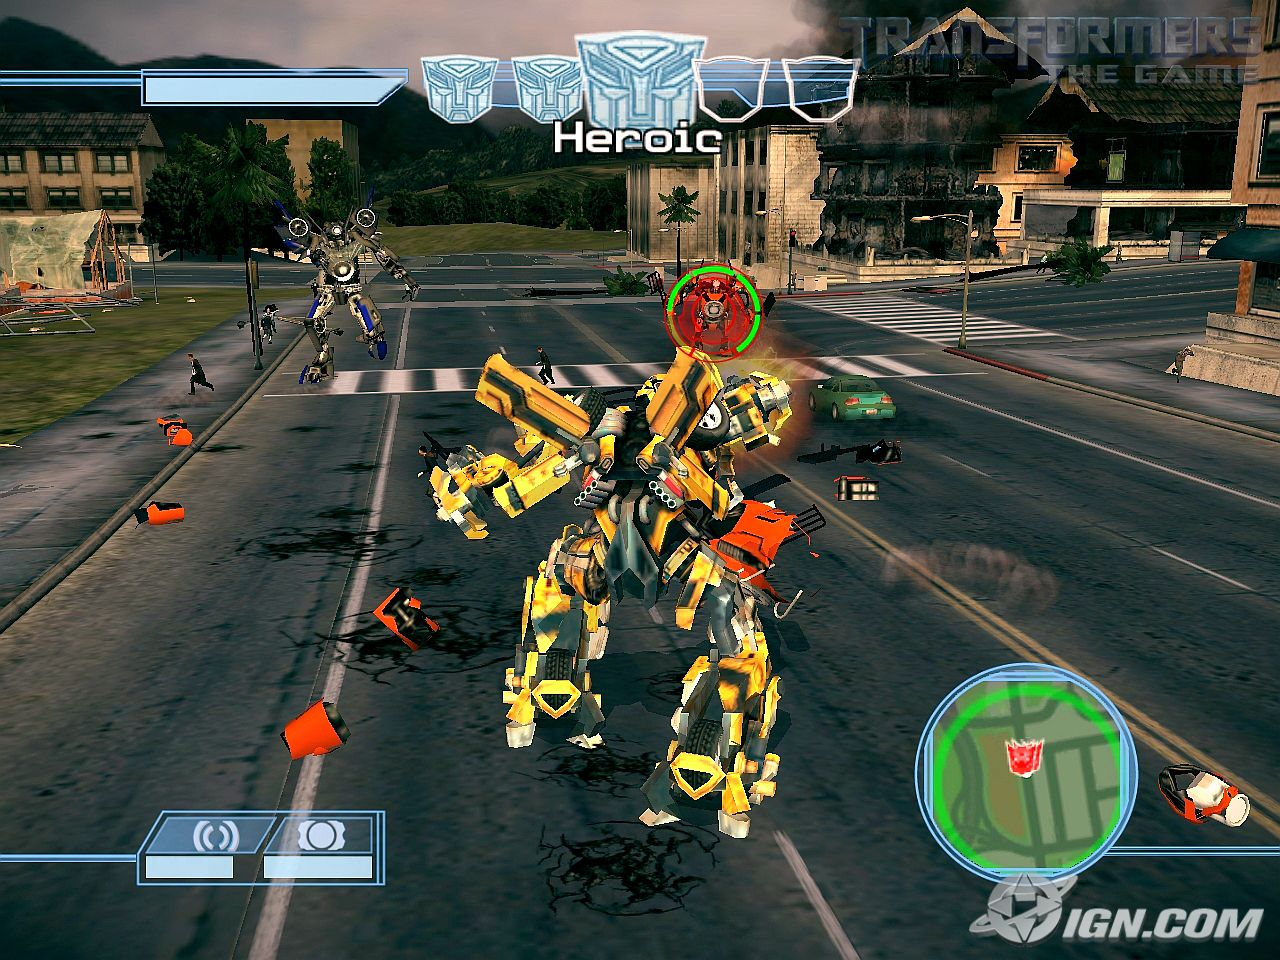 Download Game Transformer : The Game ~ Rifaiy Share